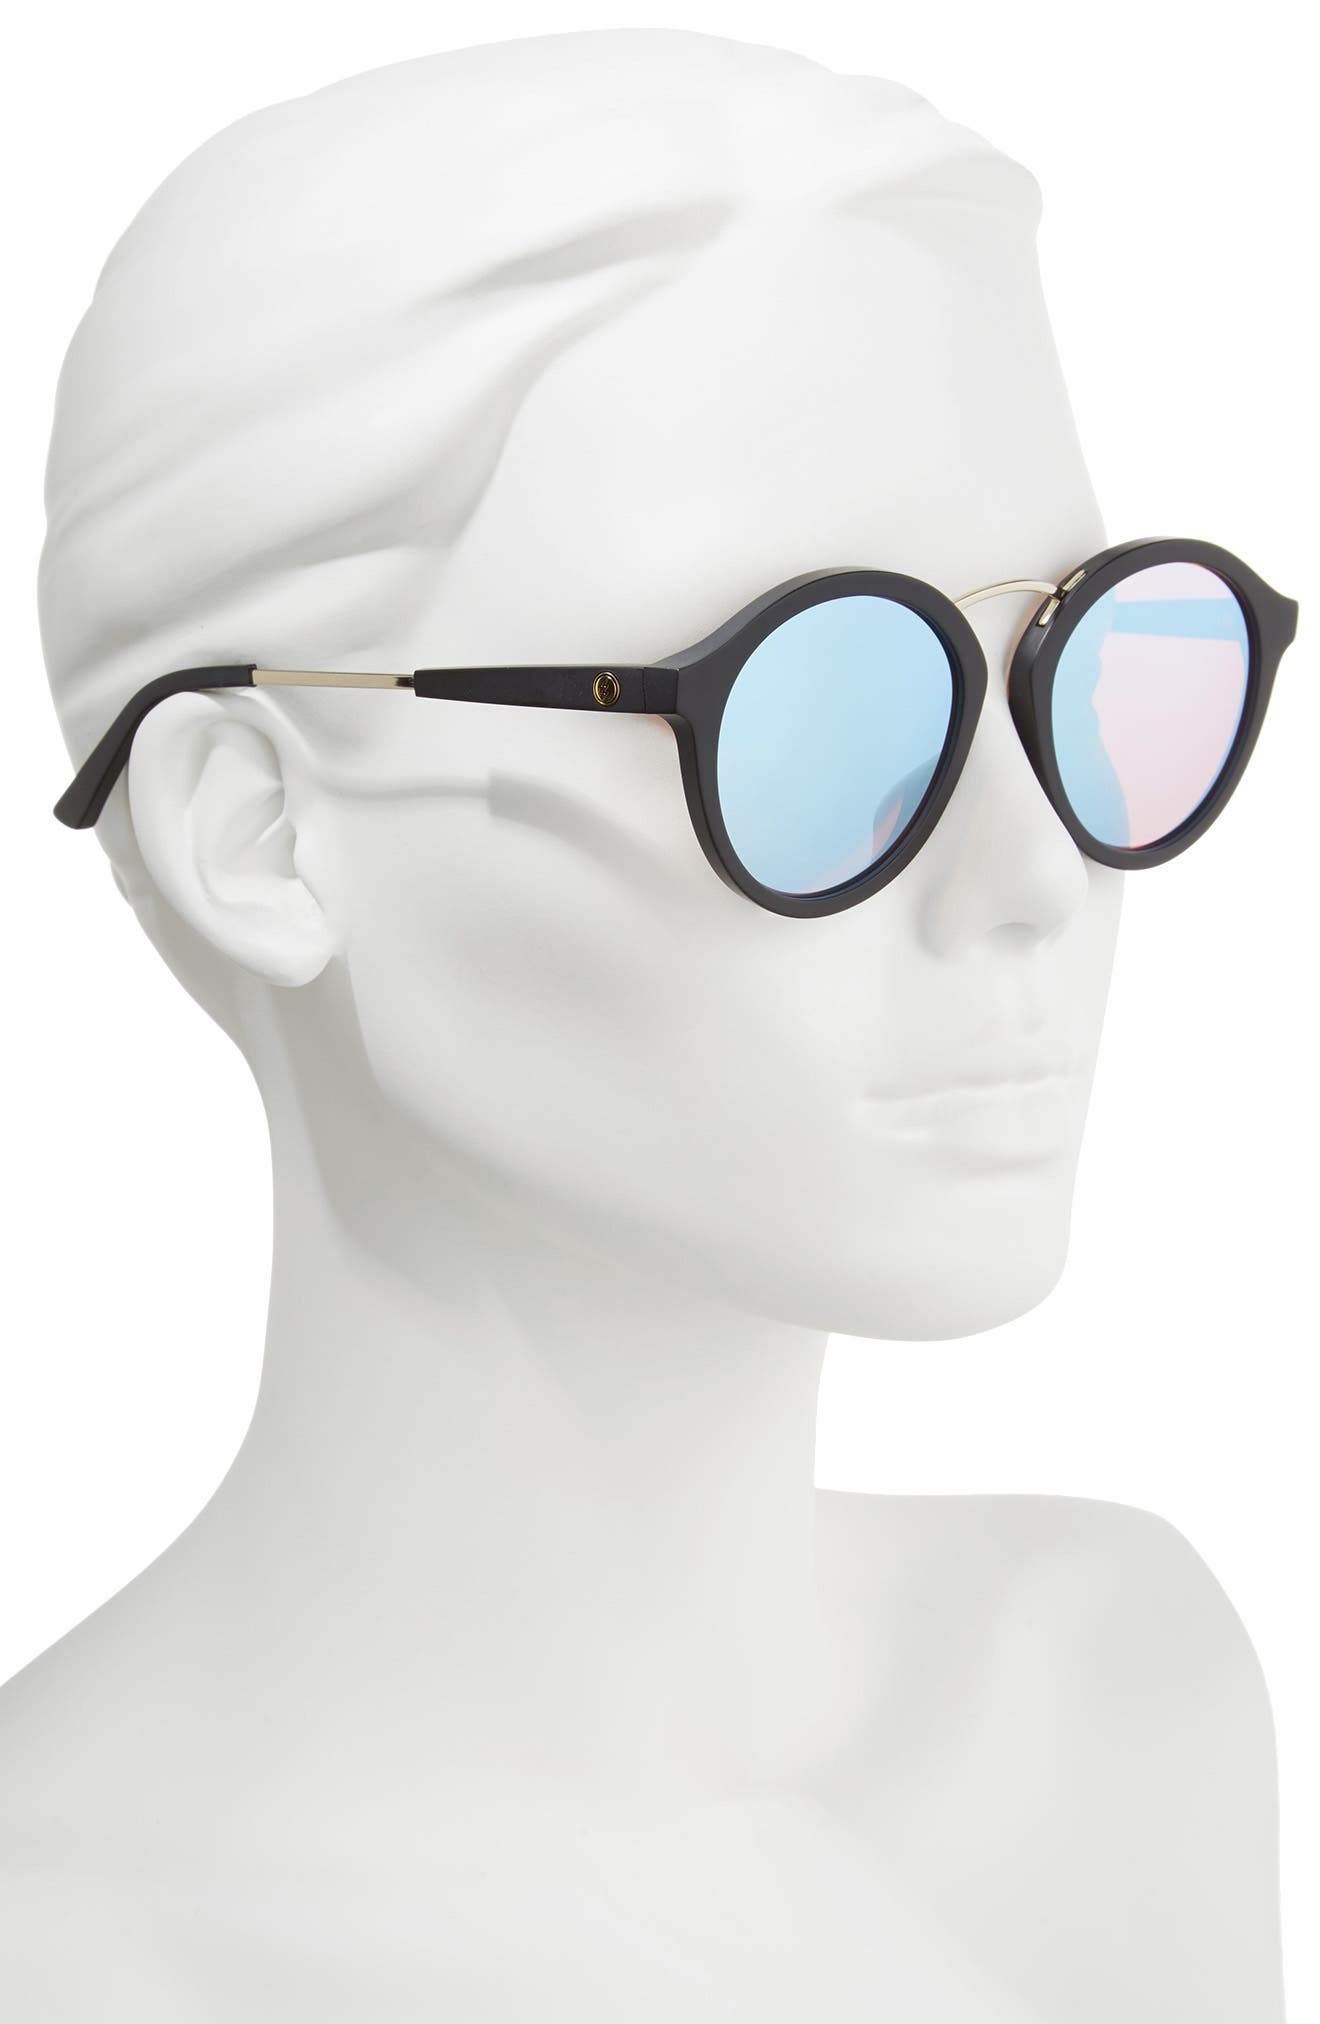 Mix Tape 52mm Mirrored Round Sunglasses,                             Alternate thumbnail 2, color,                             Matte Black/ Sky Blue Chrome